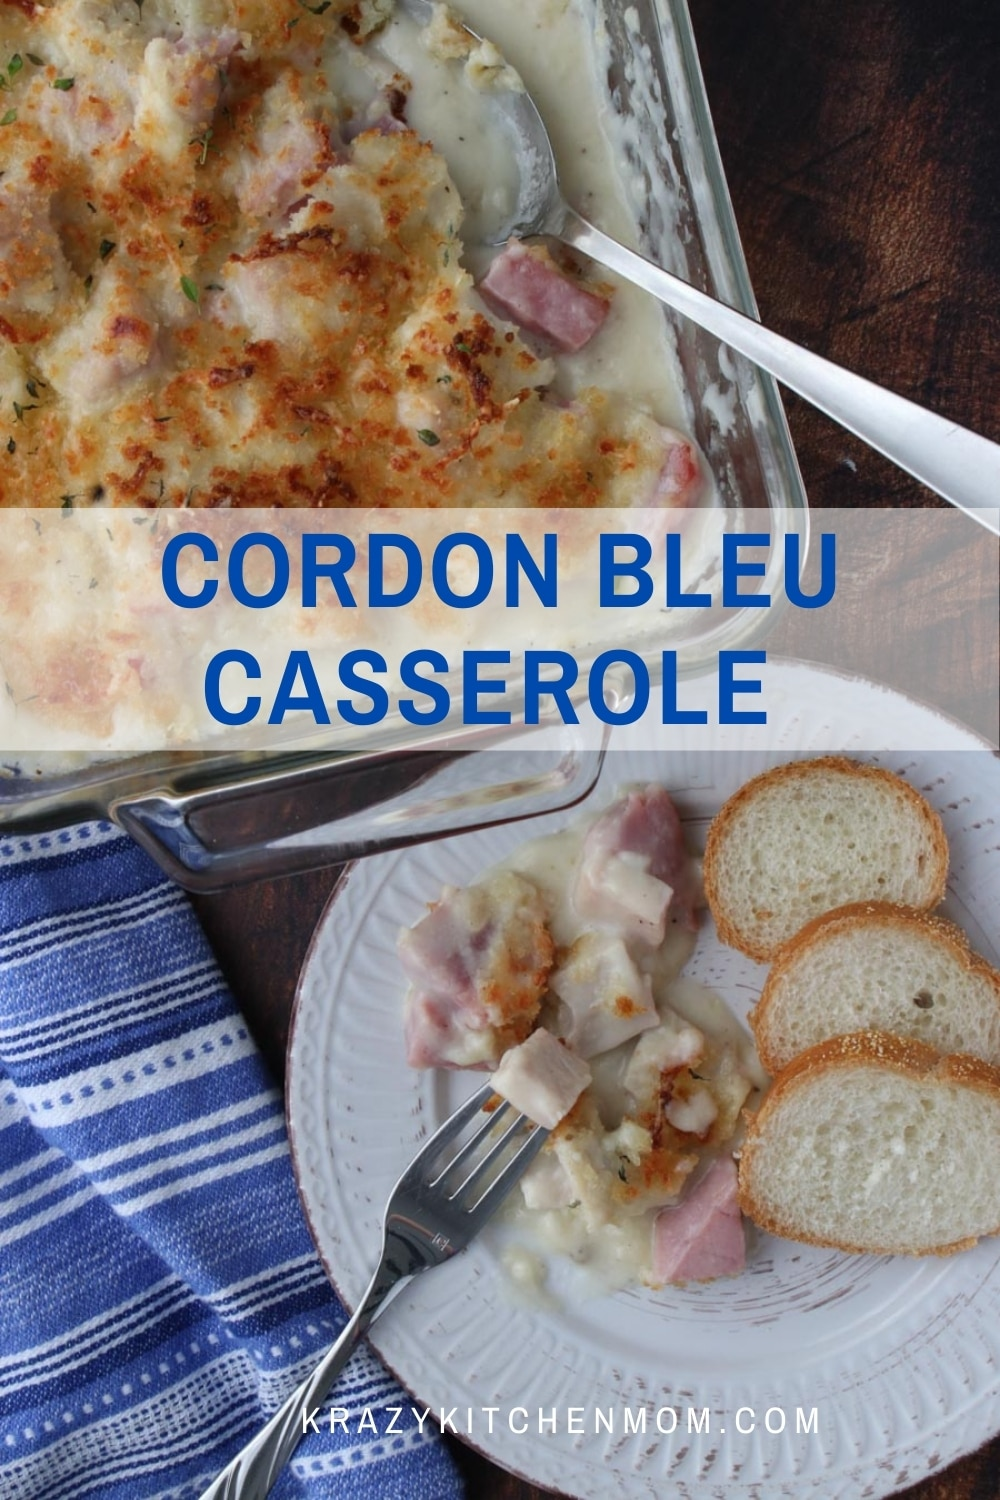 Not sure what to do with leftover turkey or ham after the holidays? Make this creamy cheesy twist on classic Cordon Bleu in a casserole. via @krazykitchenmom